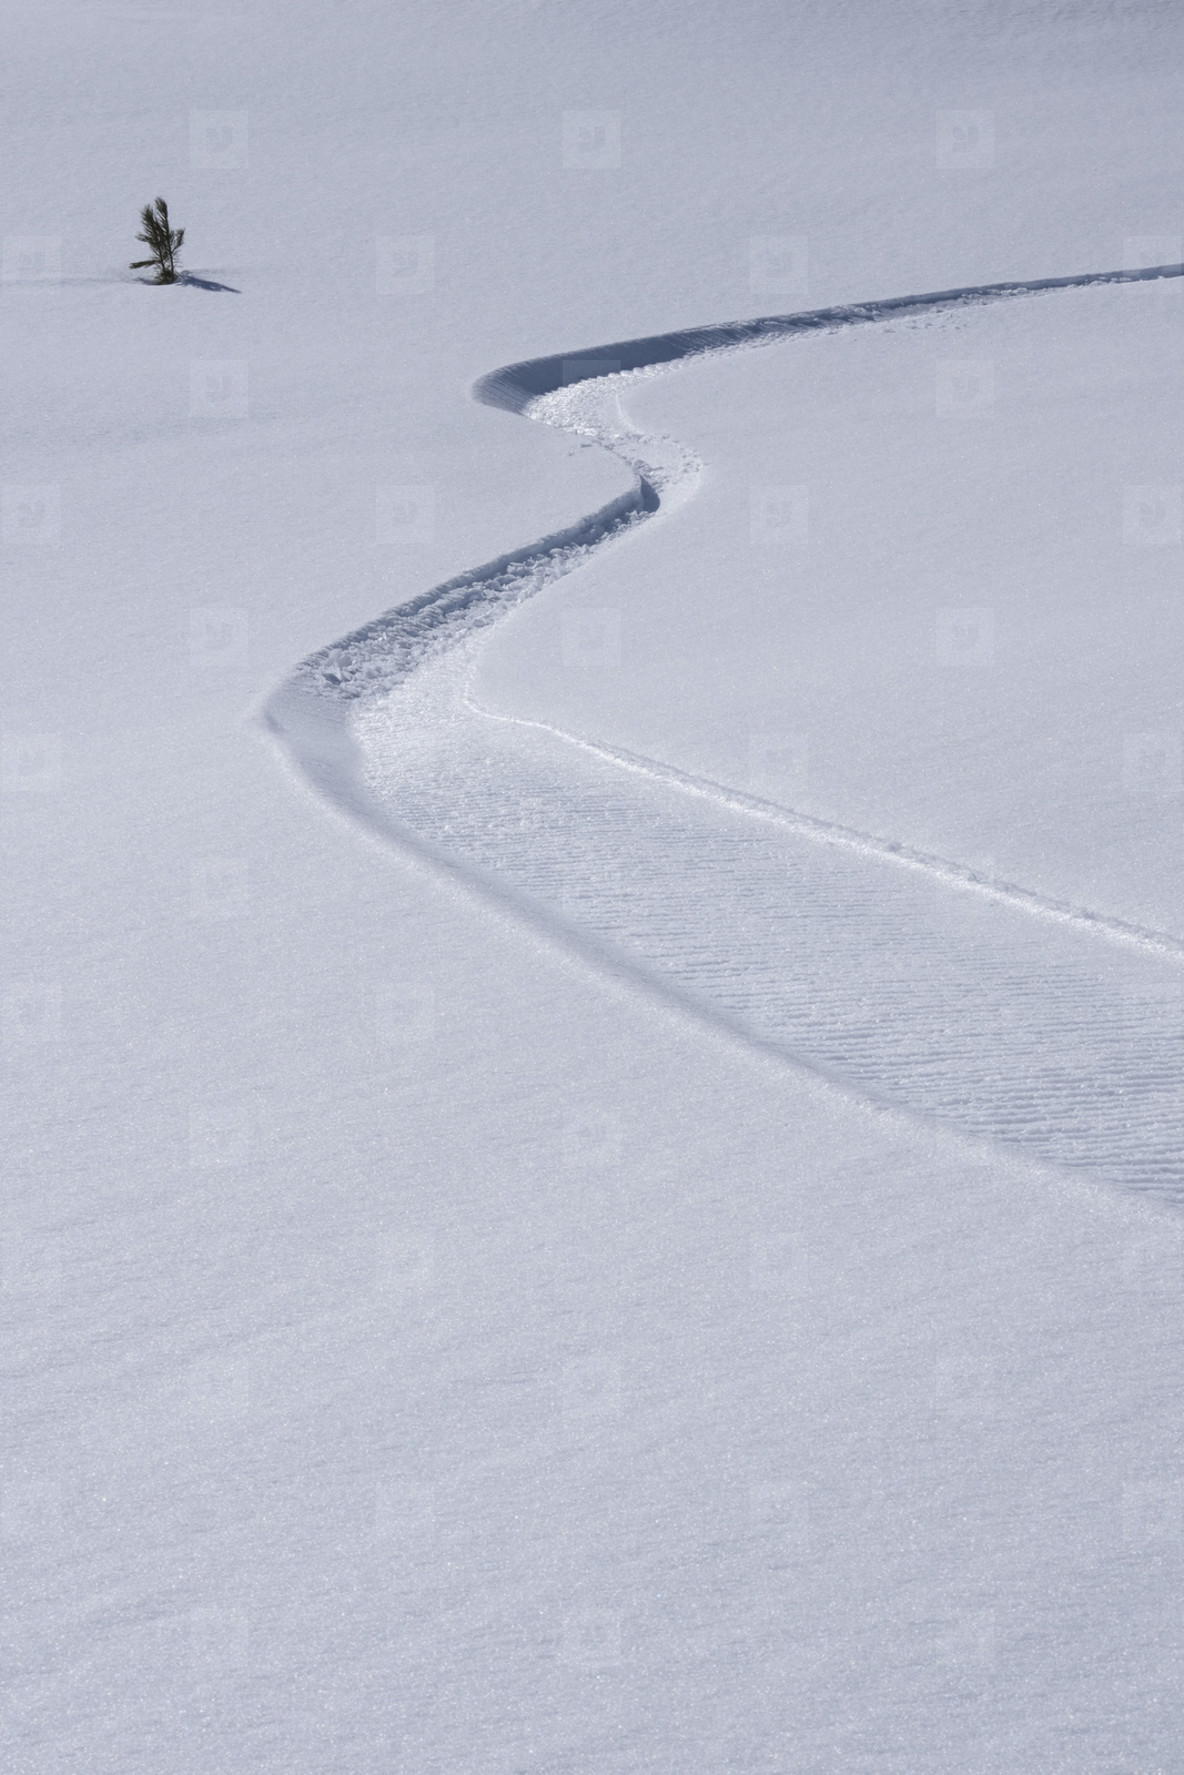 Winding path on sunny snowy slope